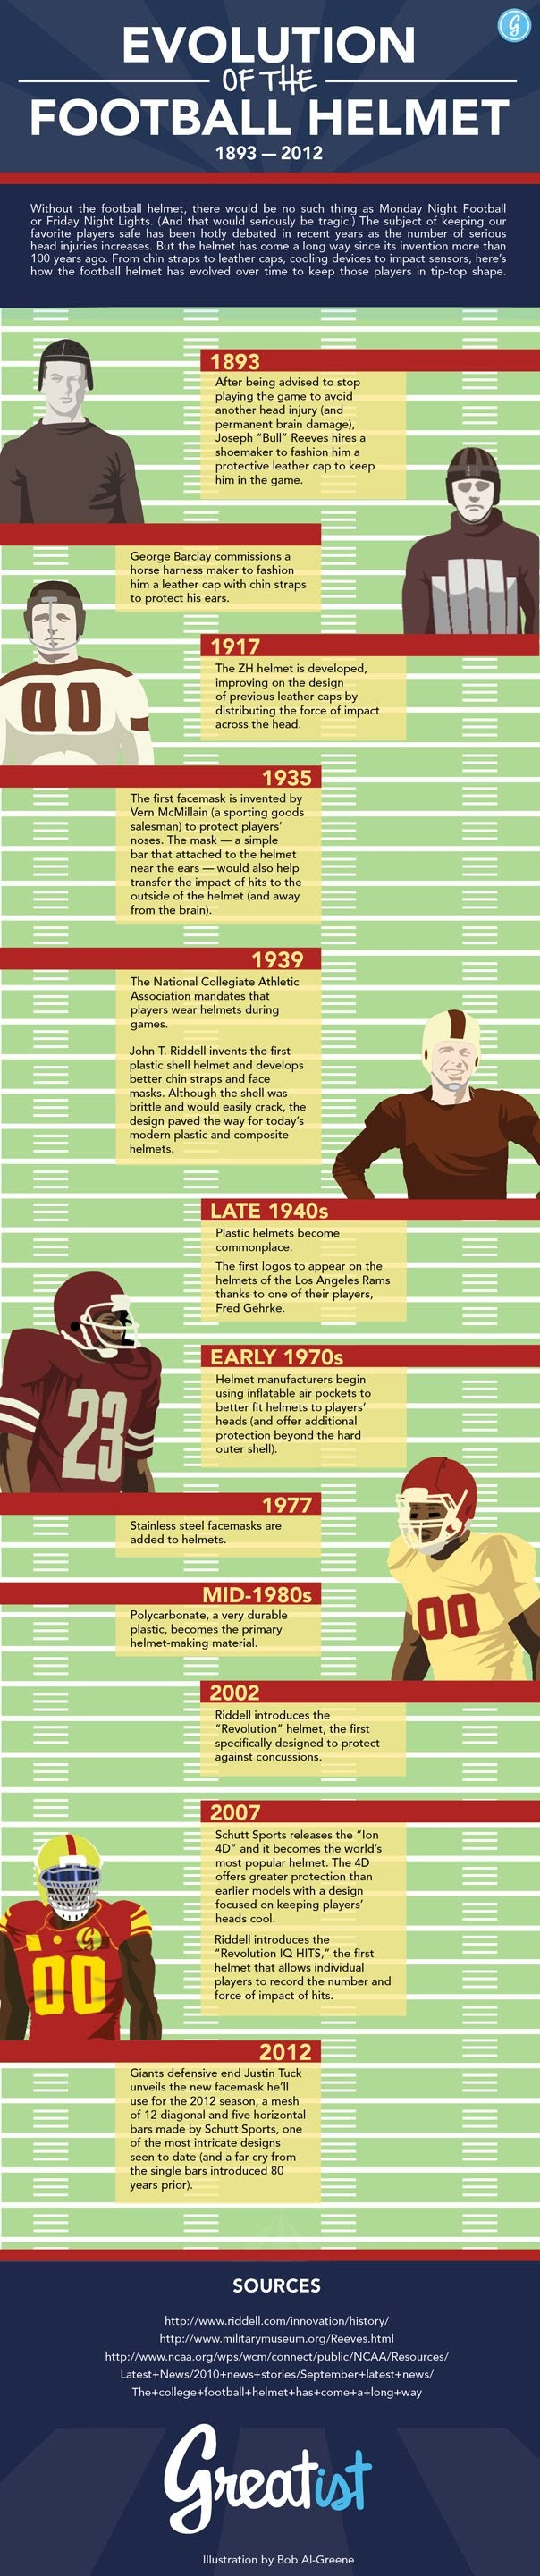 The Evolution of the Football Helmet #infographic